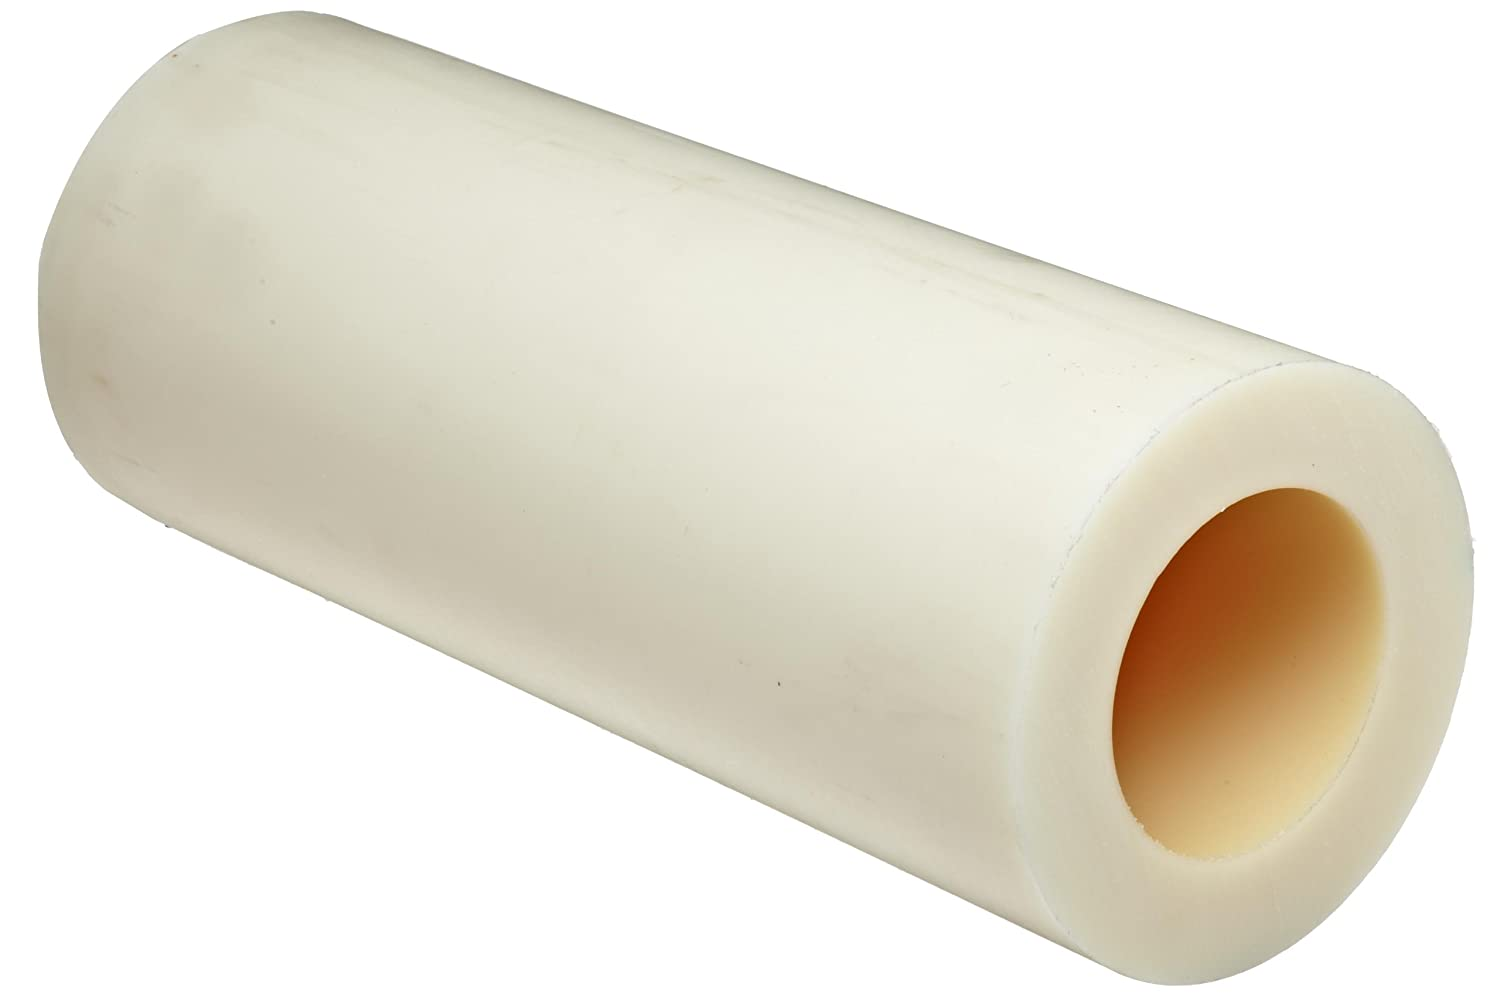 Smooth Finish 5-1//2 ID Cast Nylon 6 Round Rod 1 Length 7-1//2 OD 5-1//2 ID 1 Wall Thickness 1/' Length Small Parts 7-1//2 OD White 1 Wall Thickness ASTM D5989